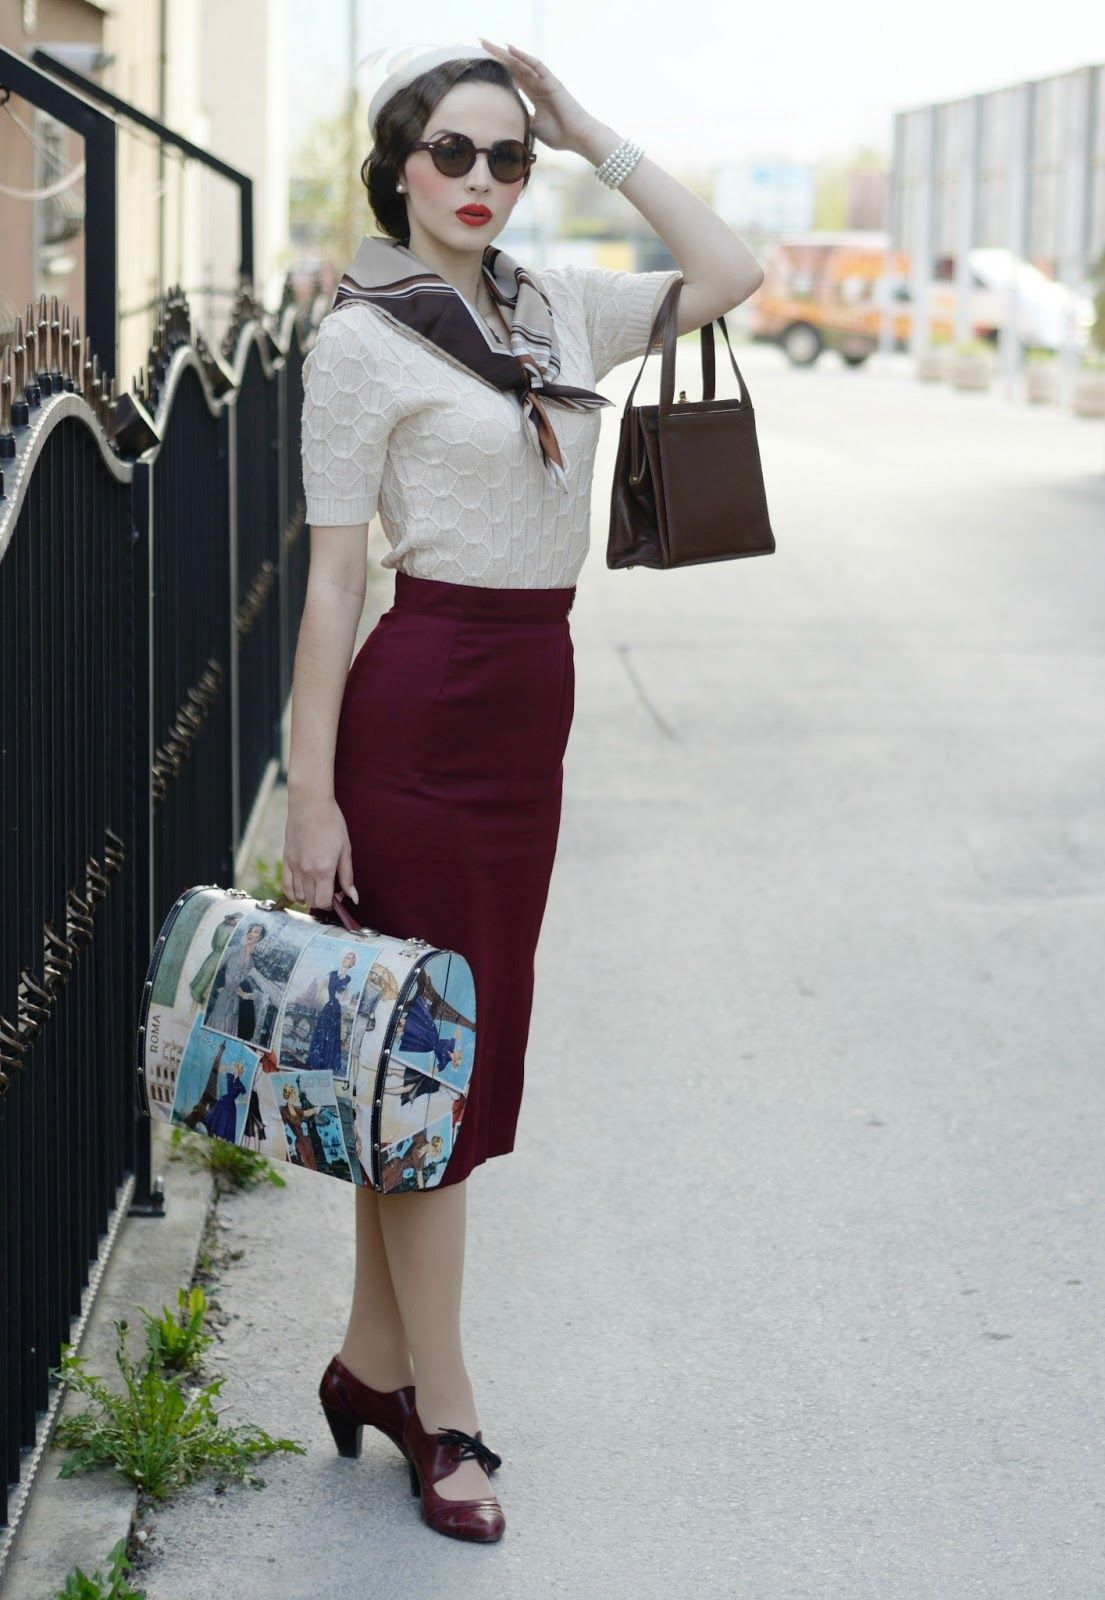 Red Skirt White Blouse And Blue Navy Top Scarf The Sailor Women Outfit Of 50 39 S Women Wore